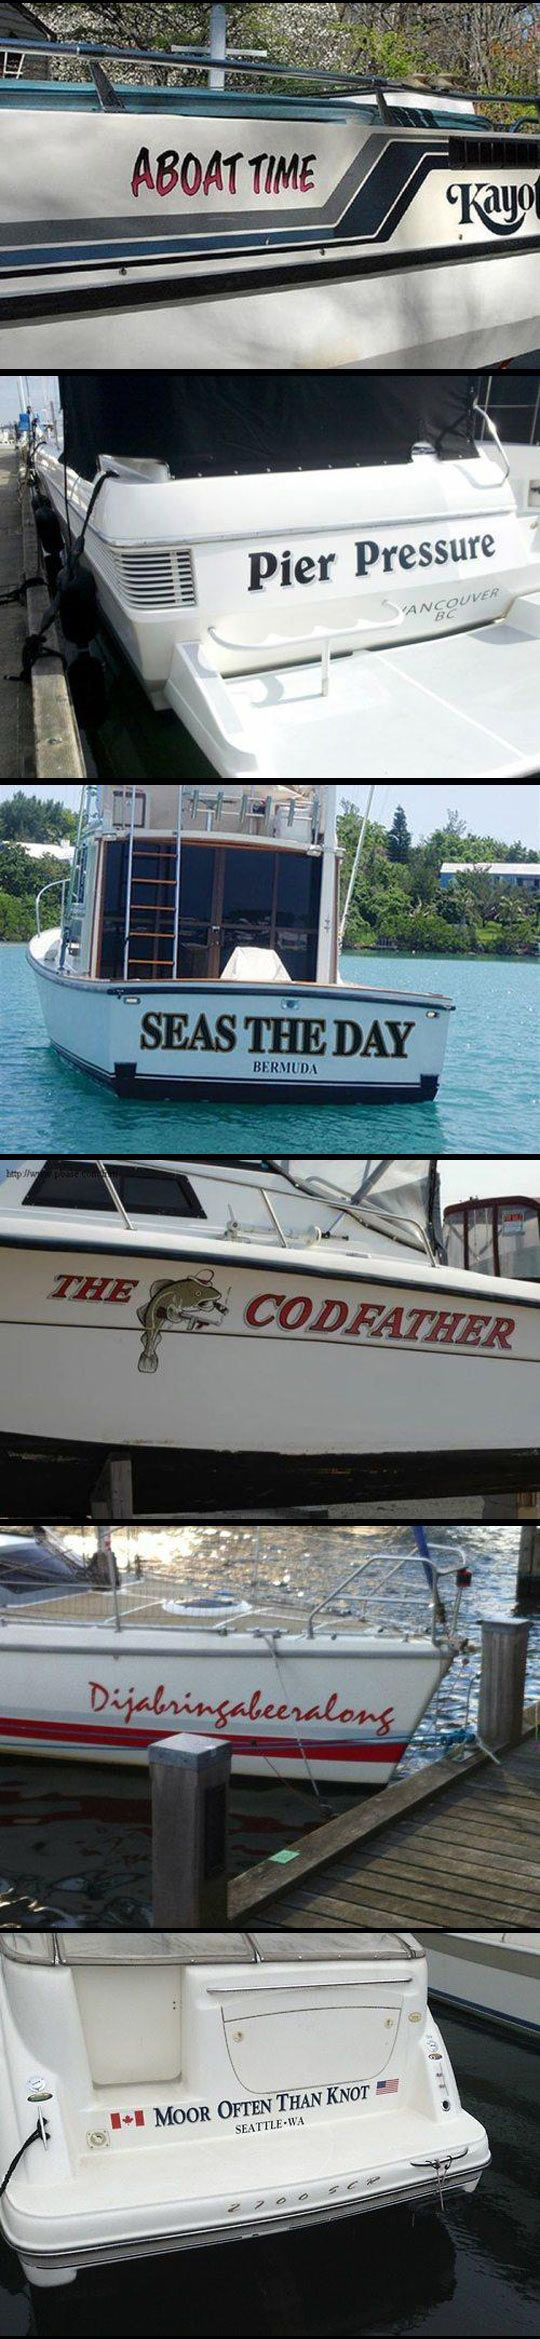 funny-names-boats-water